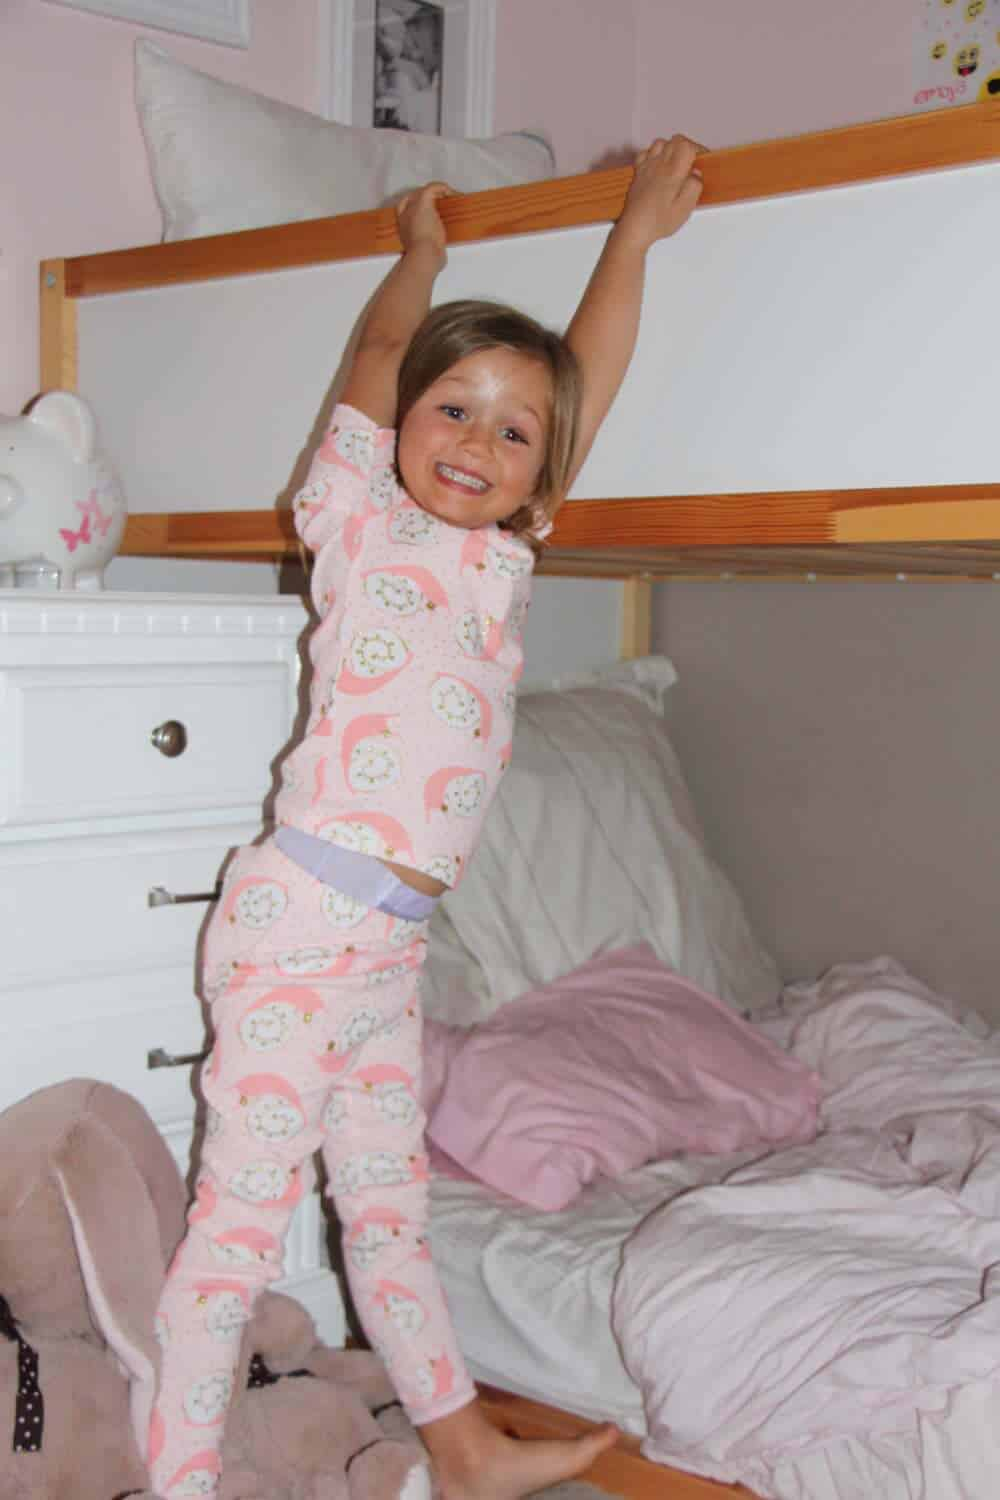 Our Bedtime Routine For Managing Nighttime Wetting